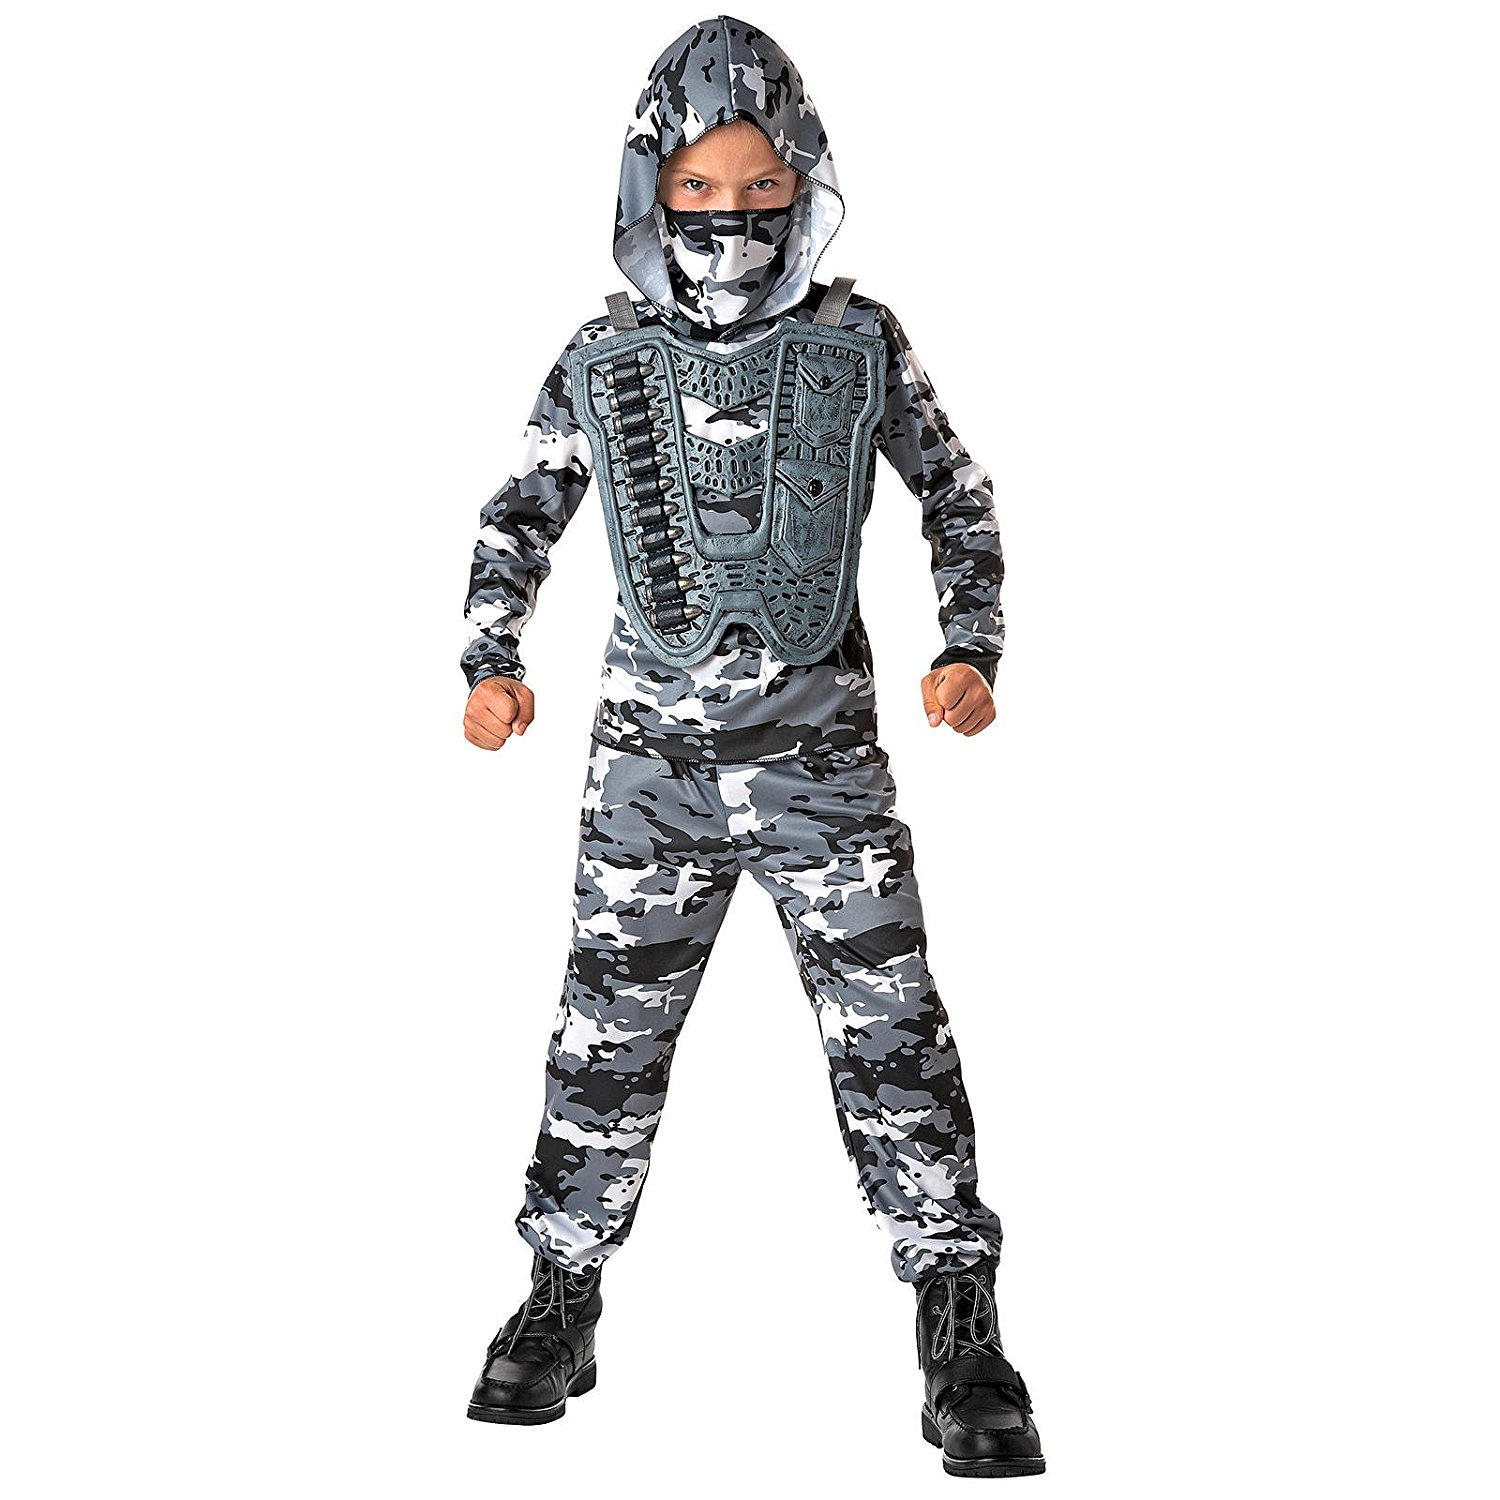 Totally Ghoul Snow Commando Costume, Boy's Size Small, for ages 3+